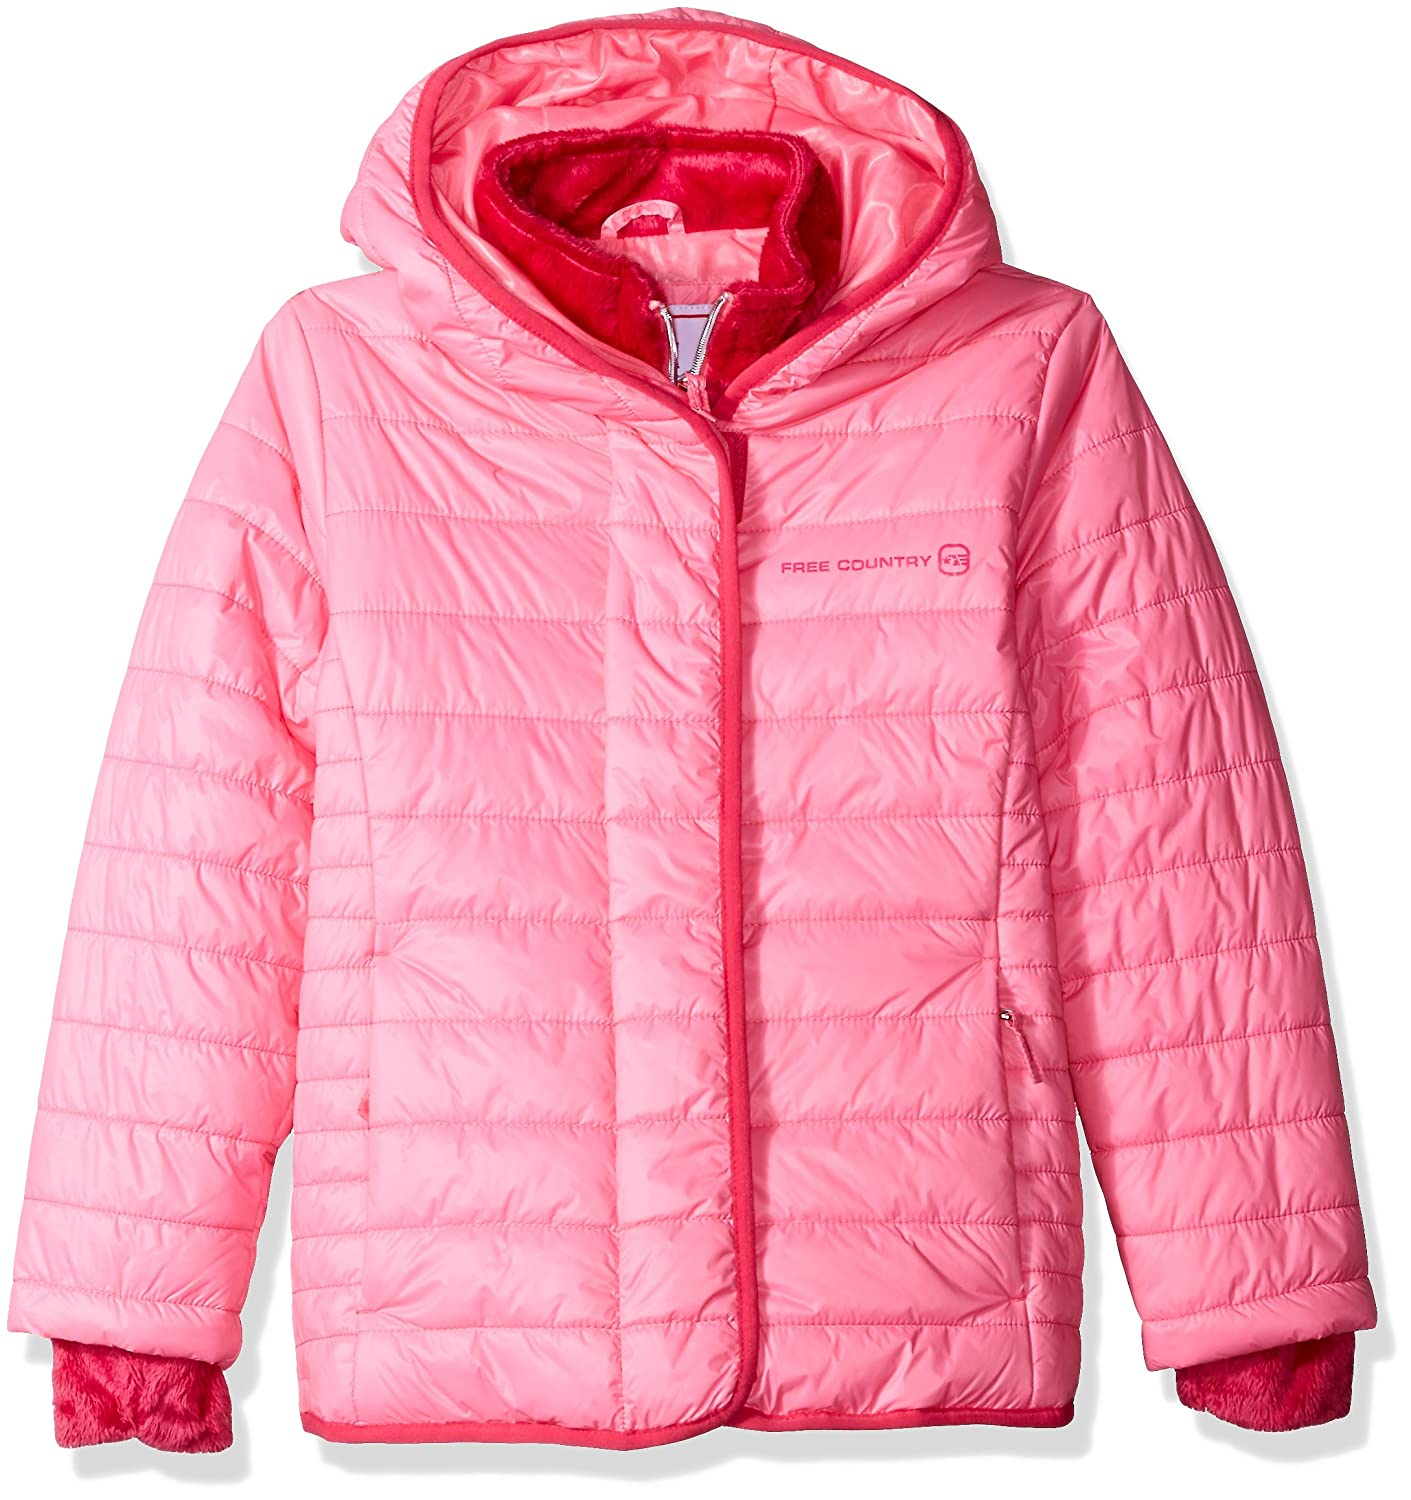 Free Country Girls' Quilted Cire Bib Jacket 6731